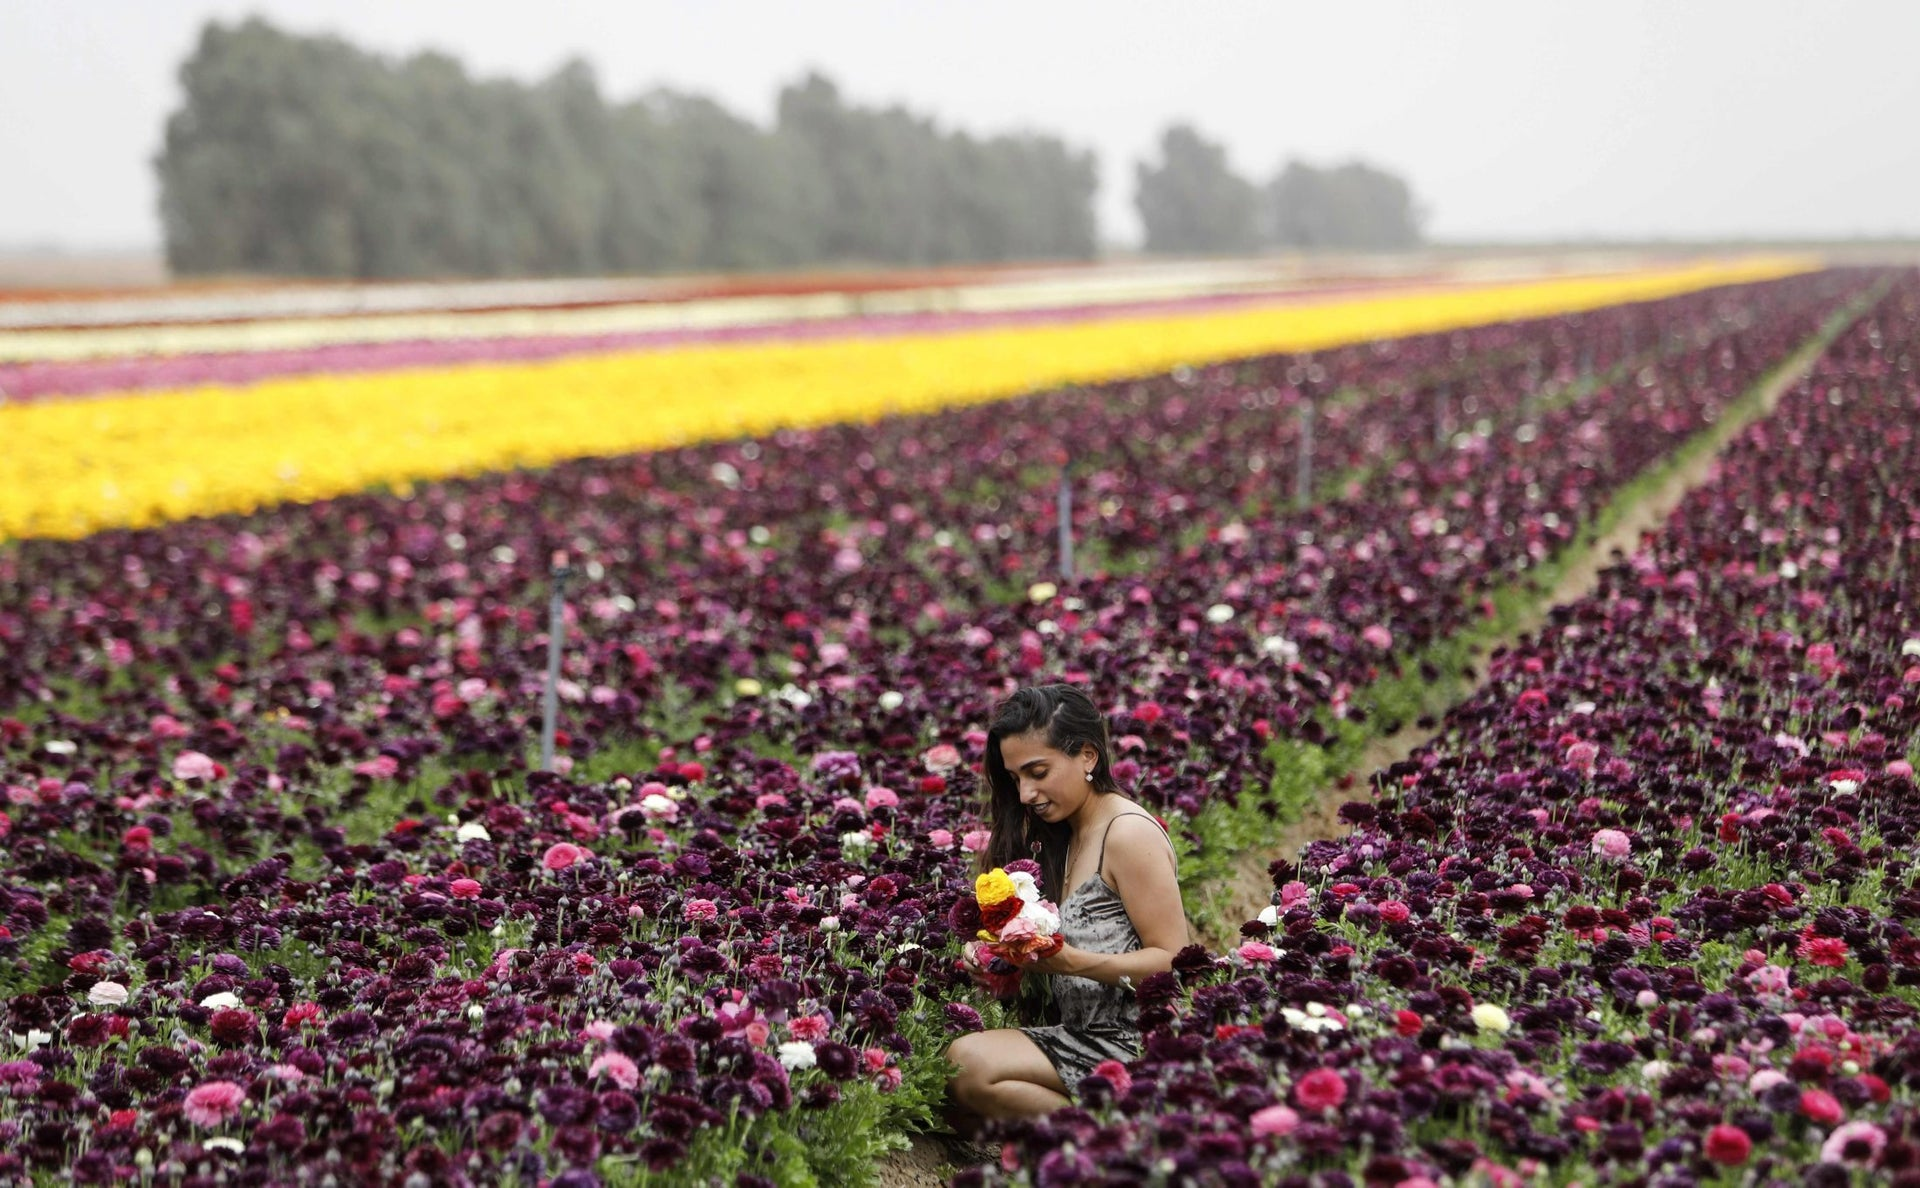 An Israeli woman sits in a field of Ranunculus flowers in the southern kibbutz of Nir Yitzhak during Passover, April 12, 2017.